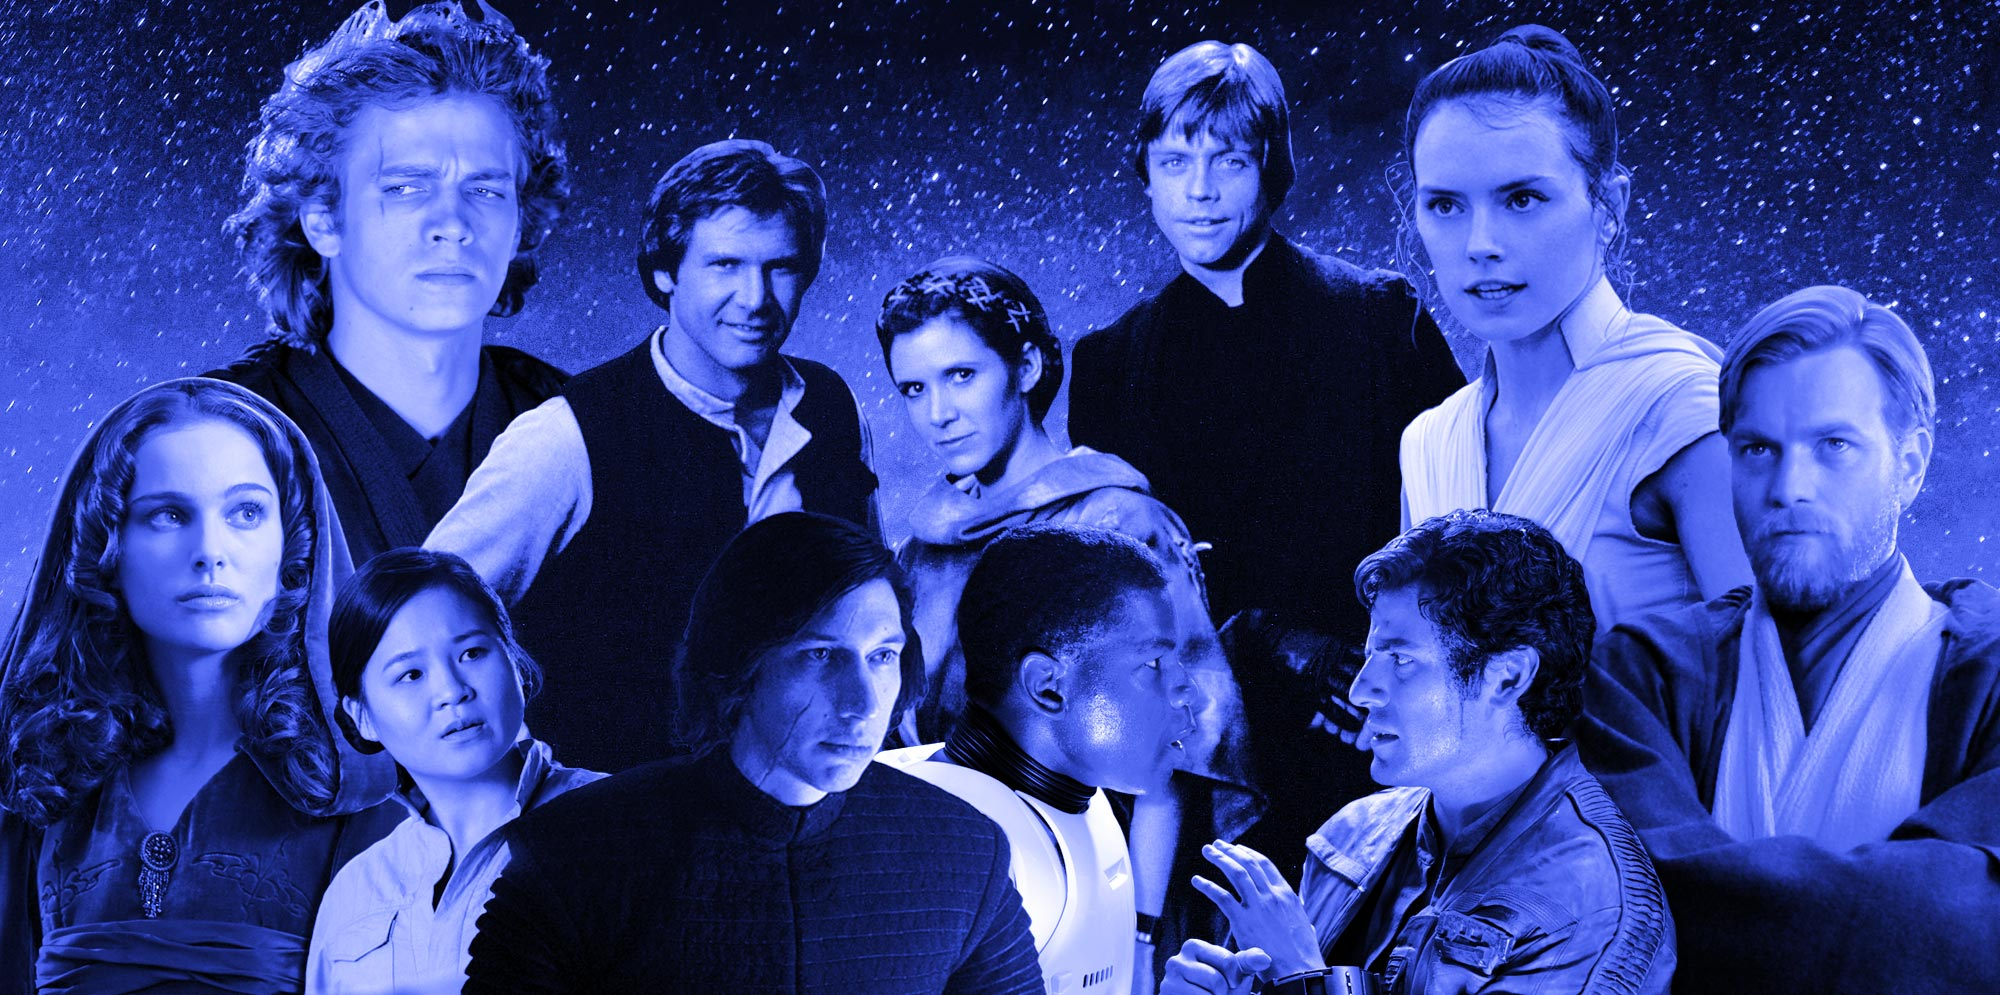 Ranking the Star Wars films